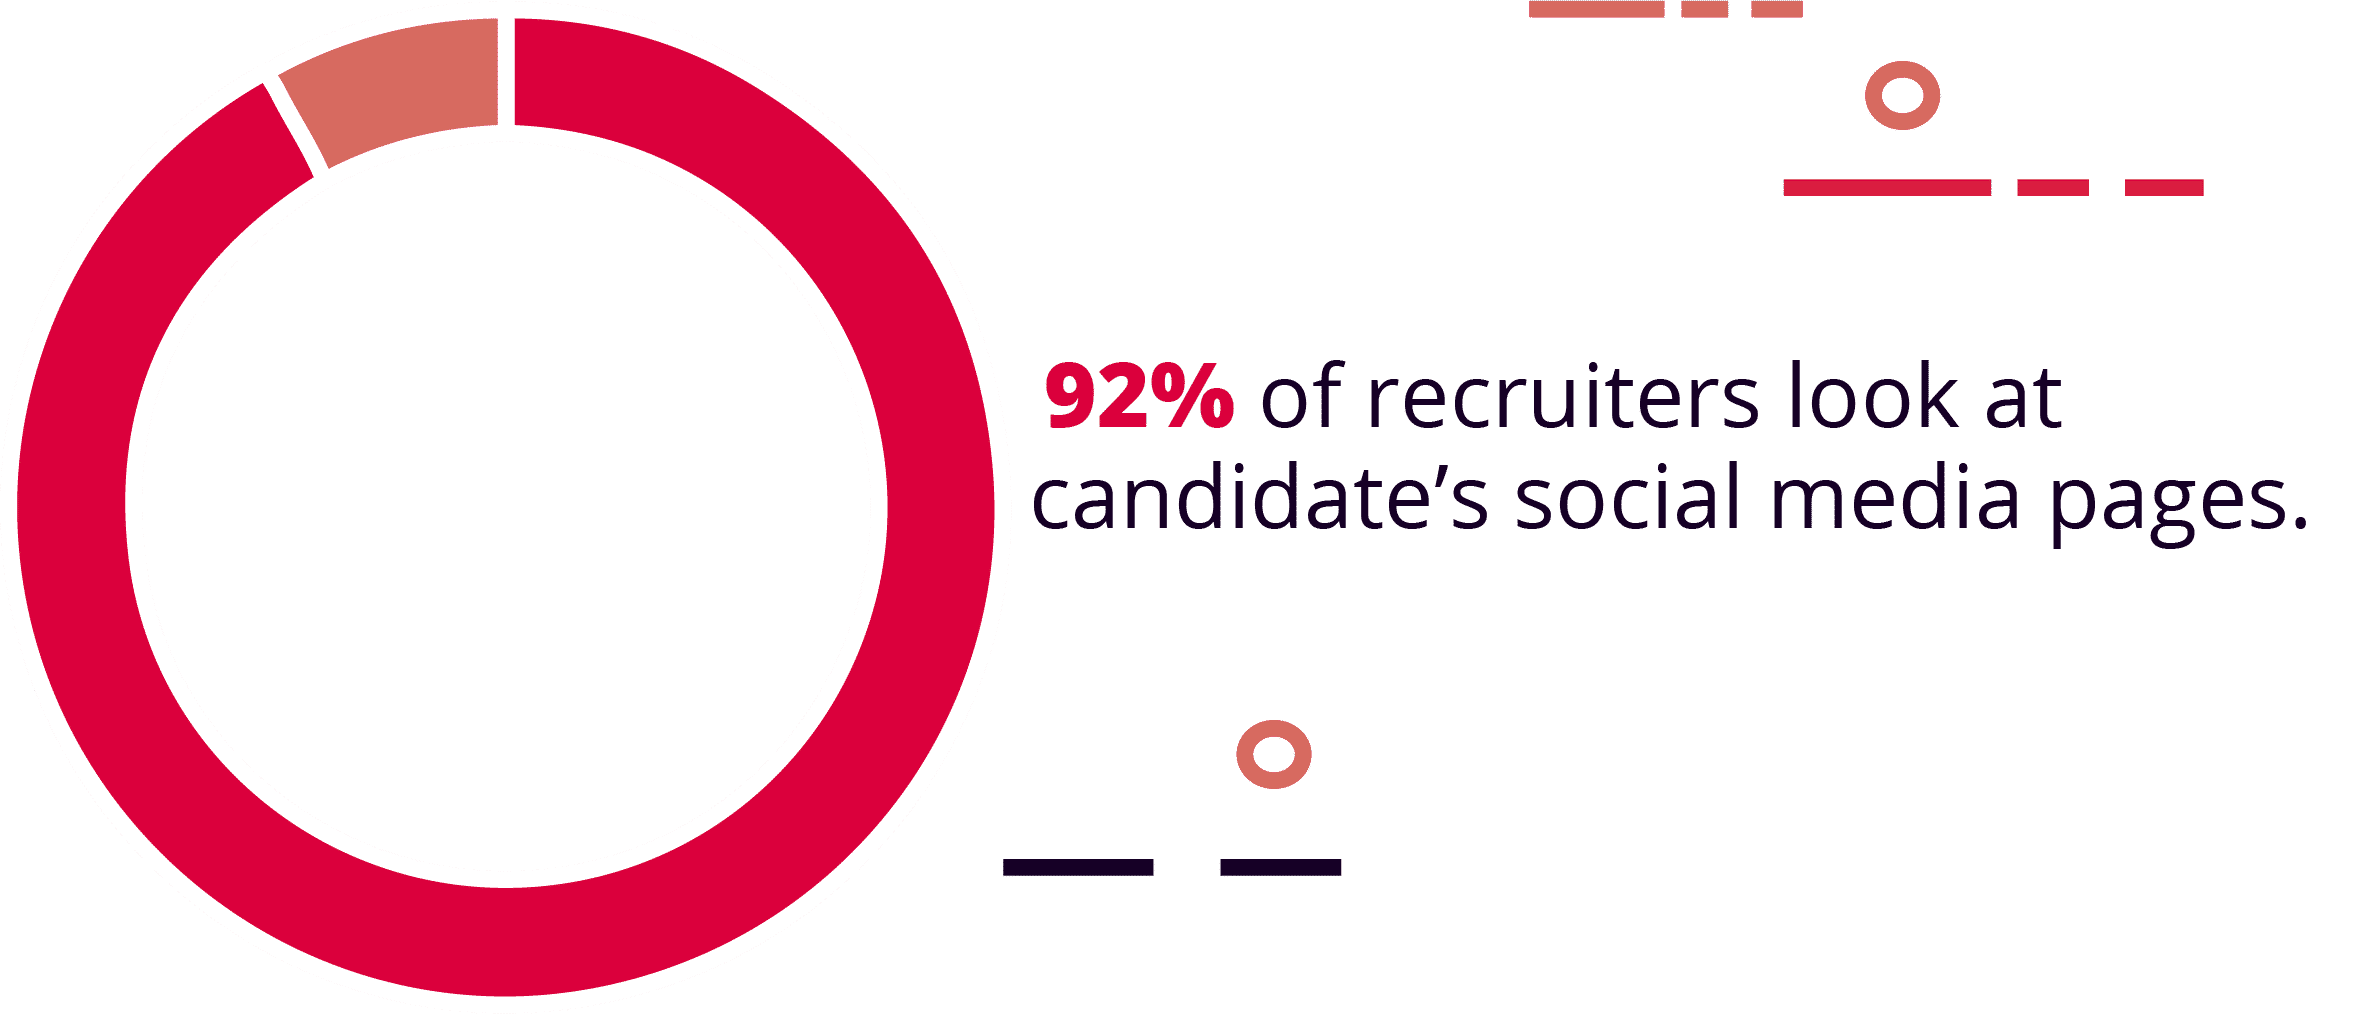 Social media use is an important factor in hiring for 92% of hiring managers